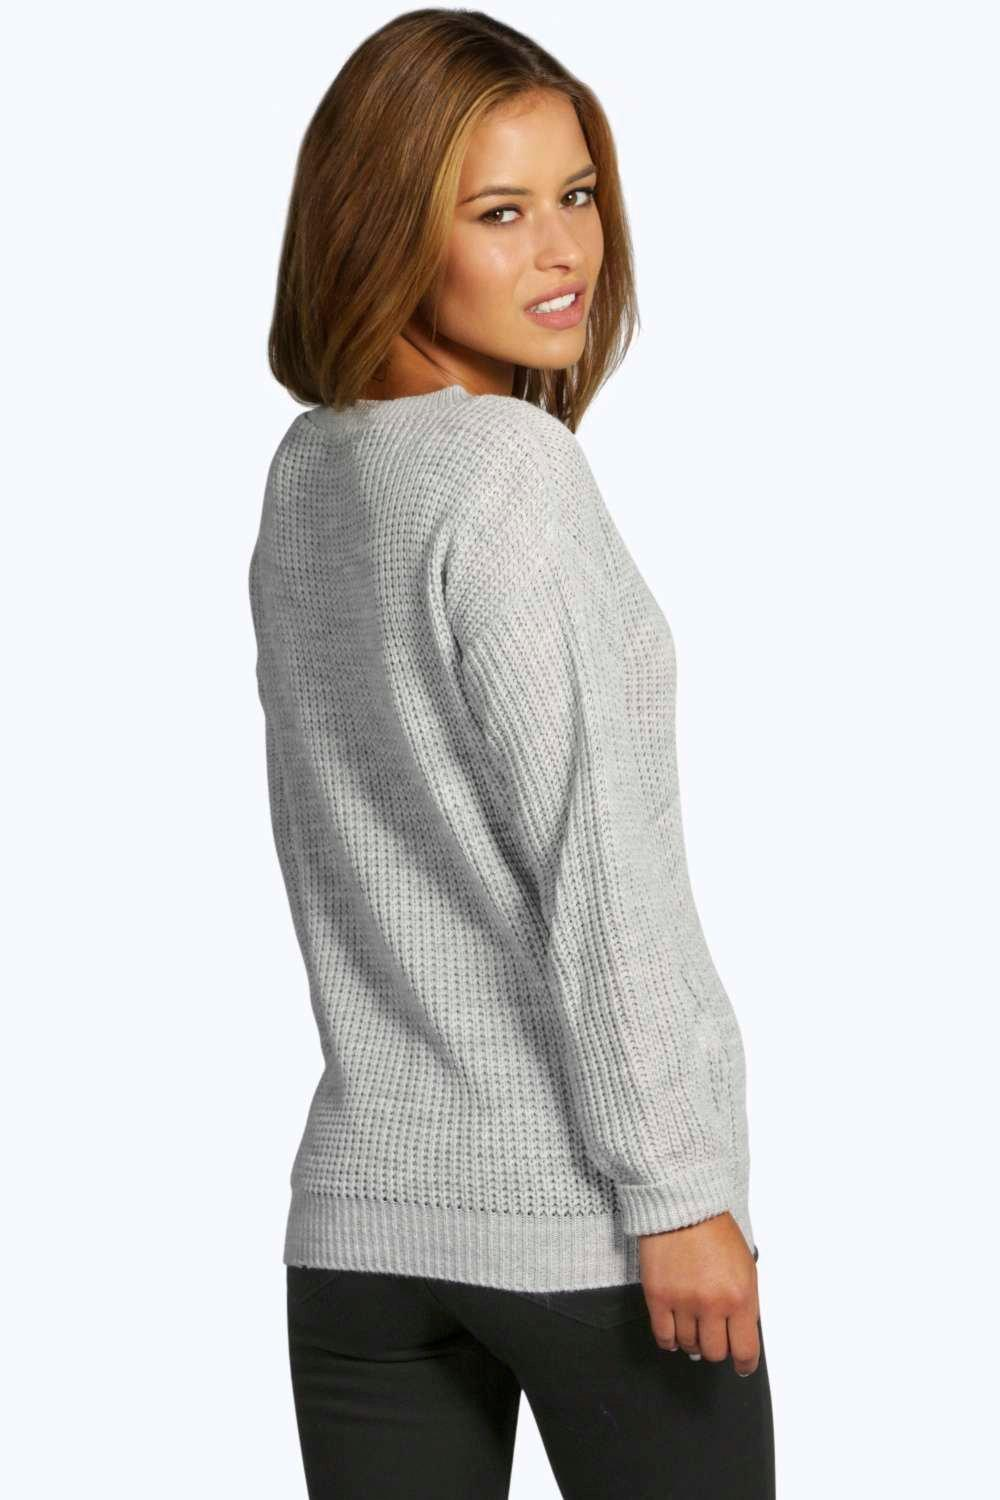 Sweaters Crochet Patterns. Our range of crocheted sweater patterns include tank tops, hoodies, polo necks, and more! From the lightest summer throw-over, to .